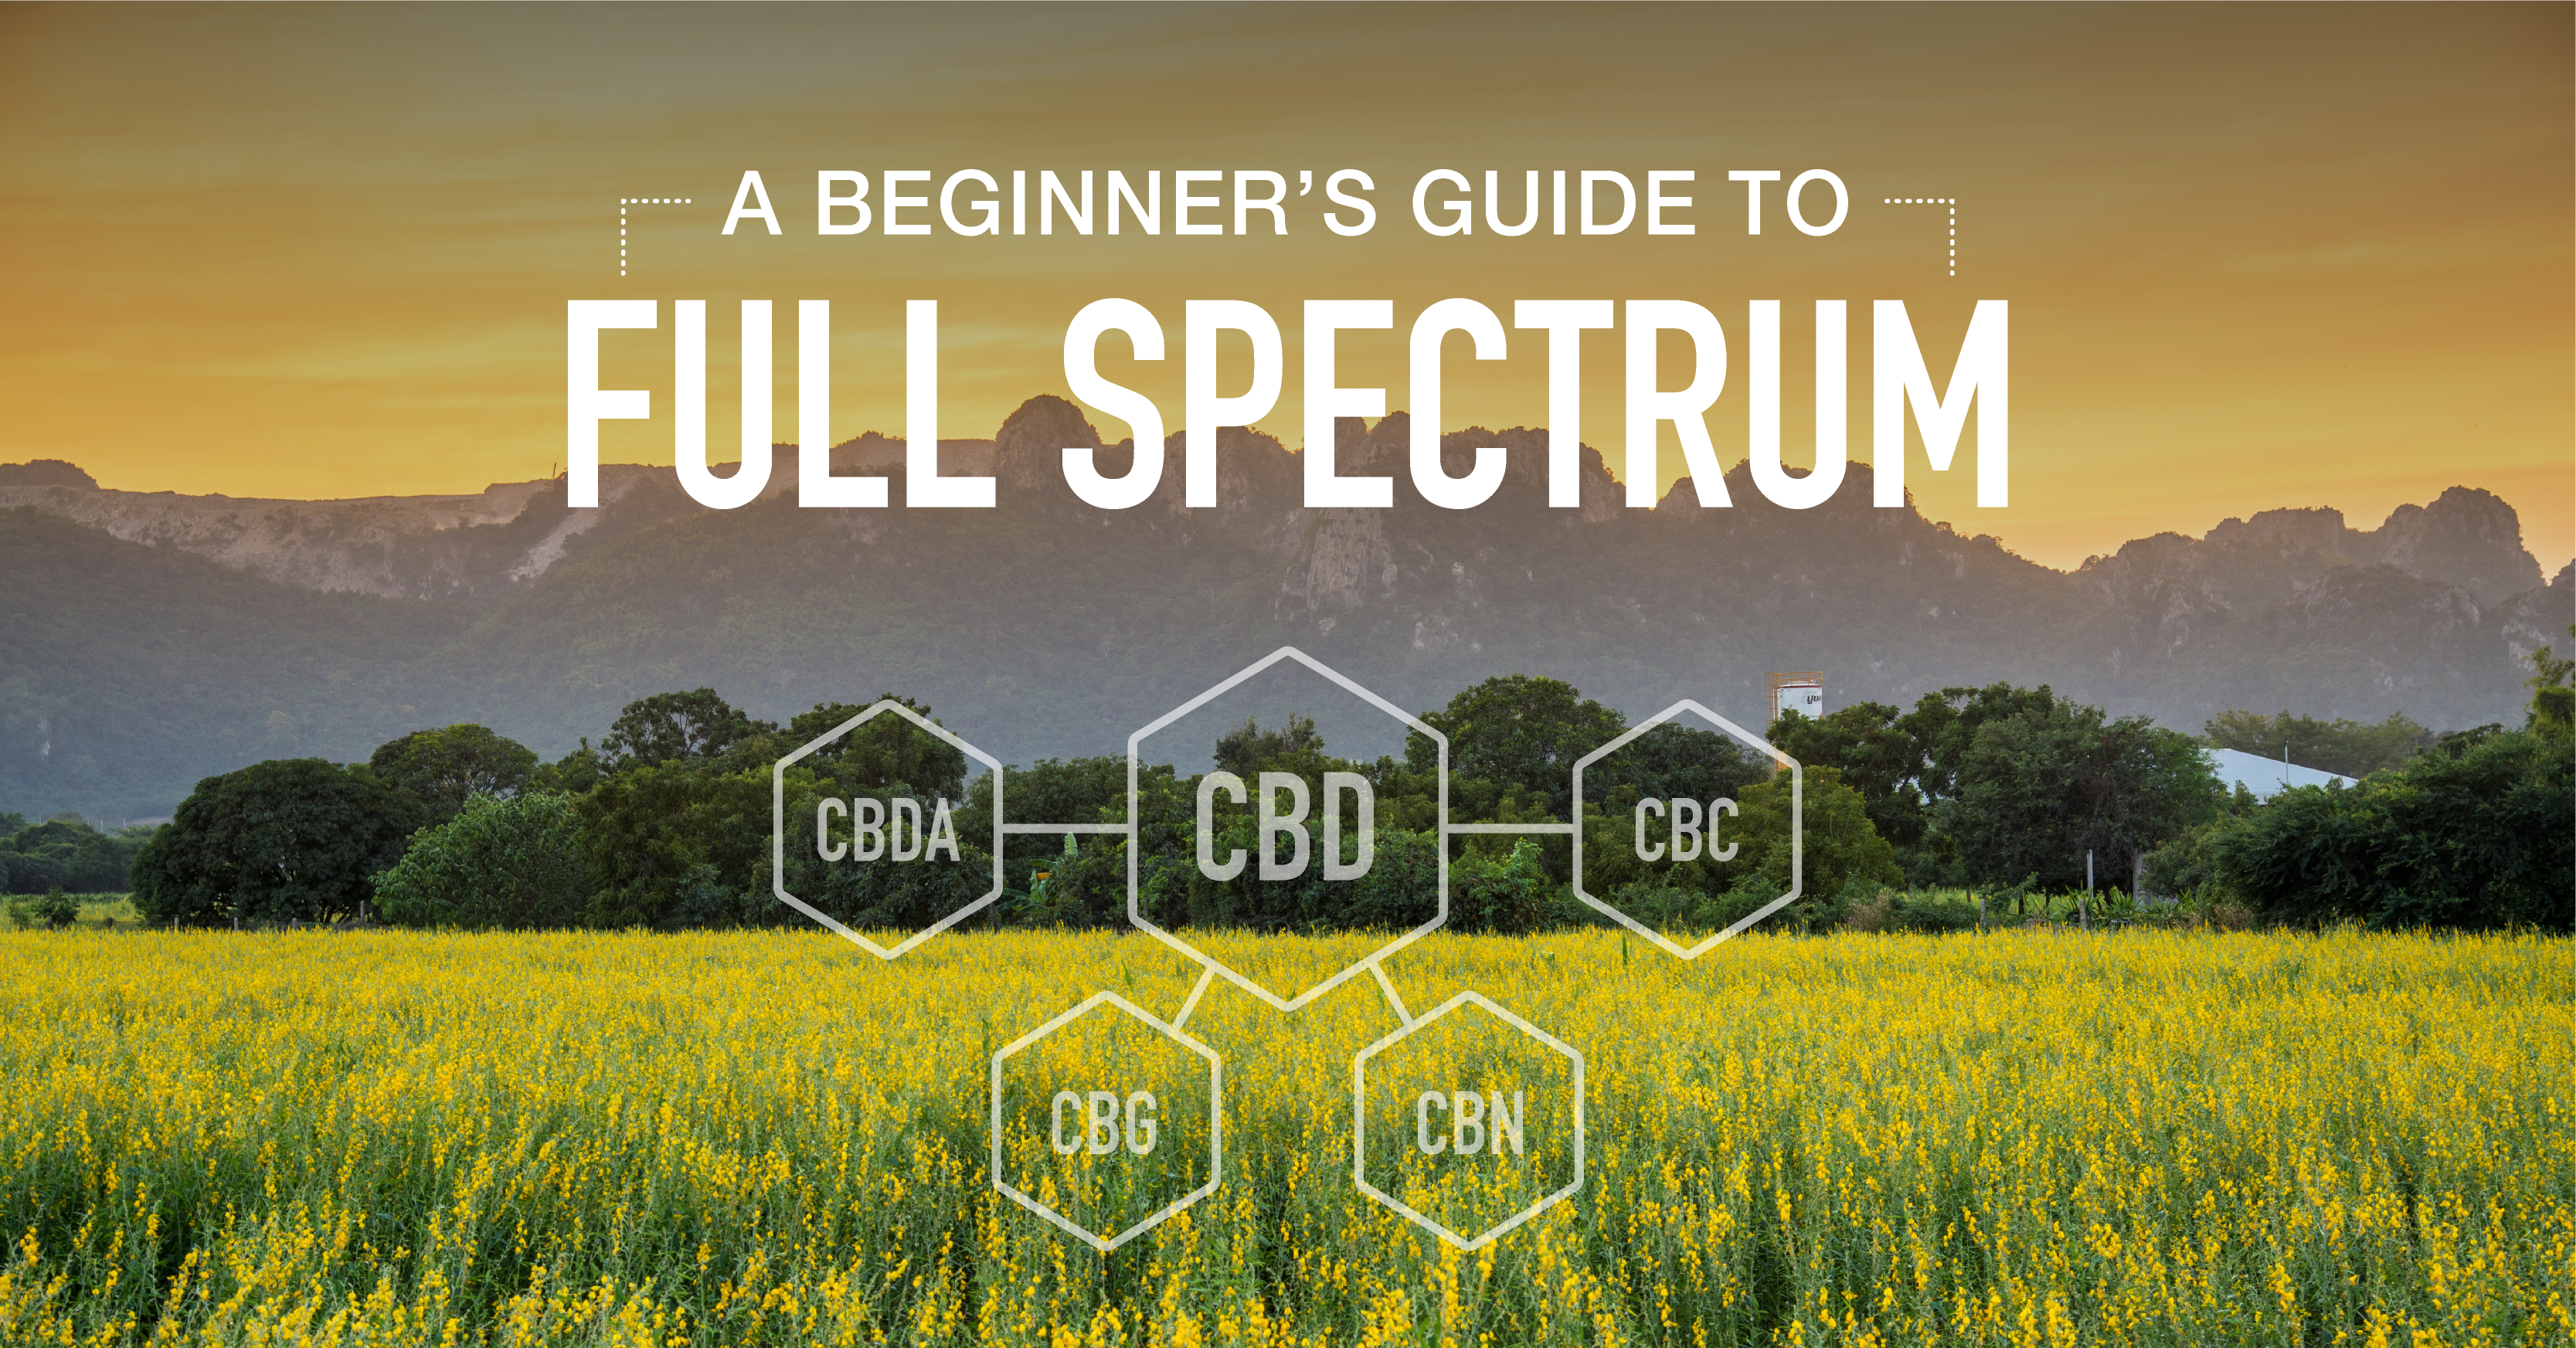 A Beginners Guide to Full Spectrum